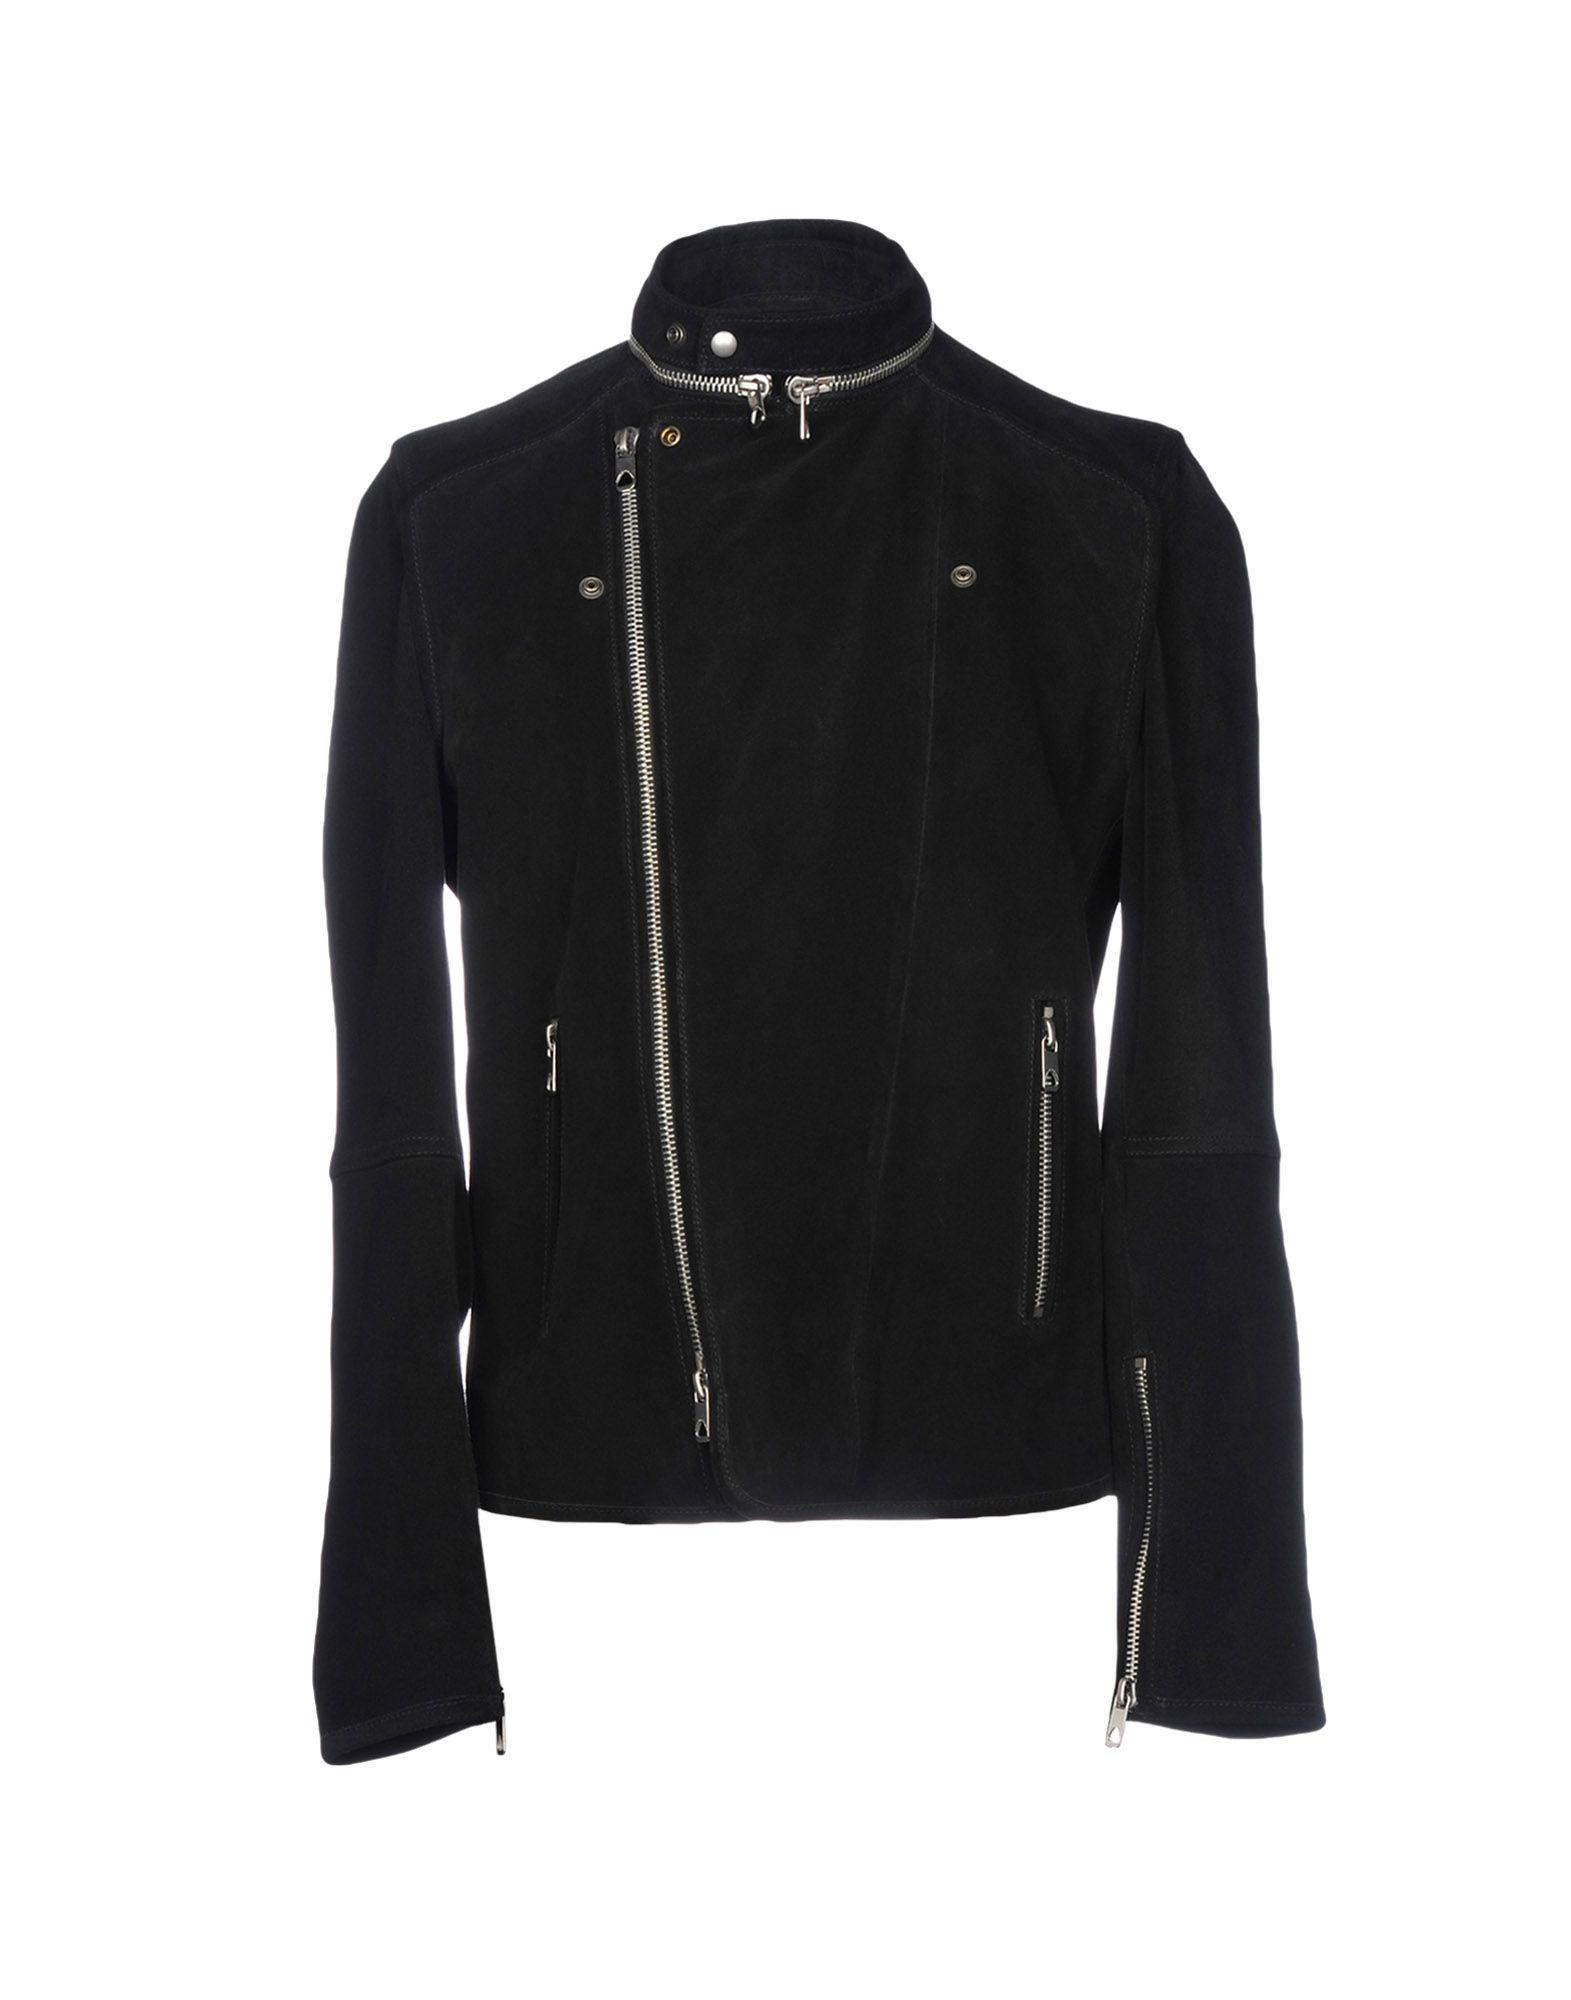 Diesel Black Gold Jackets In Black